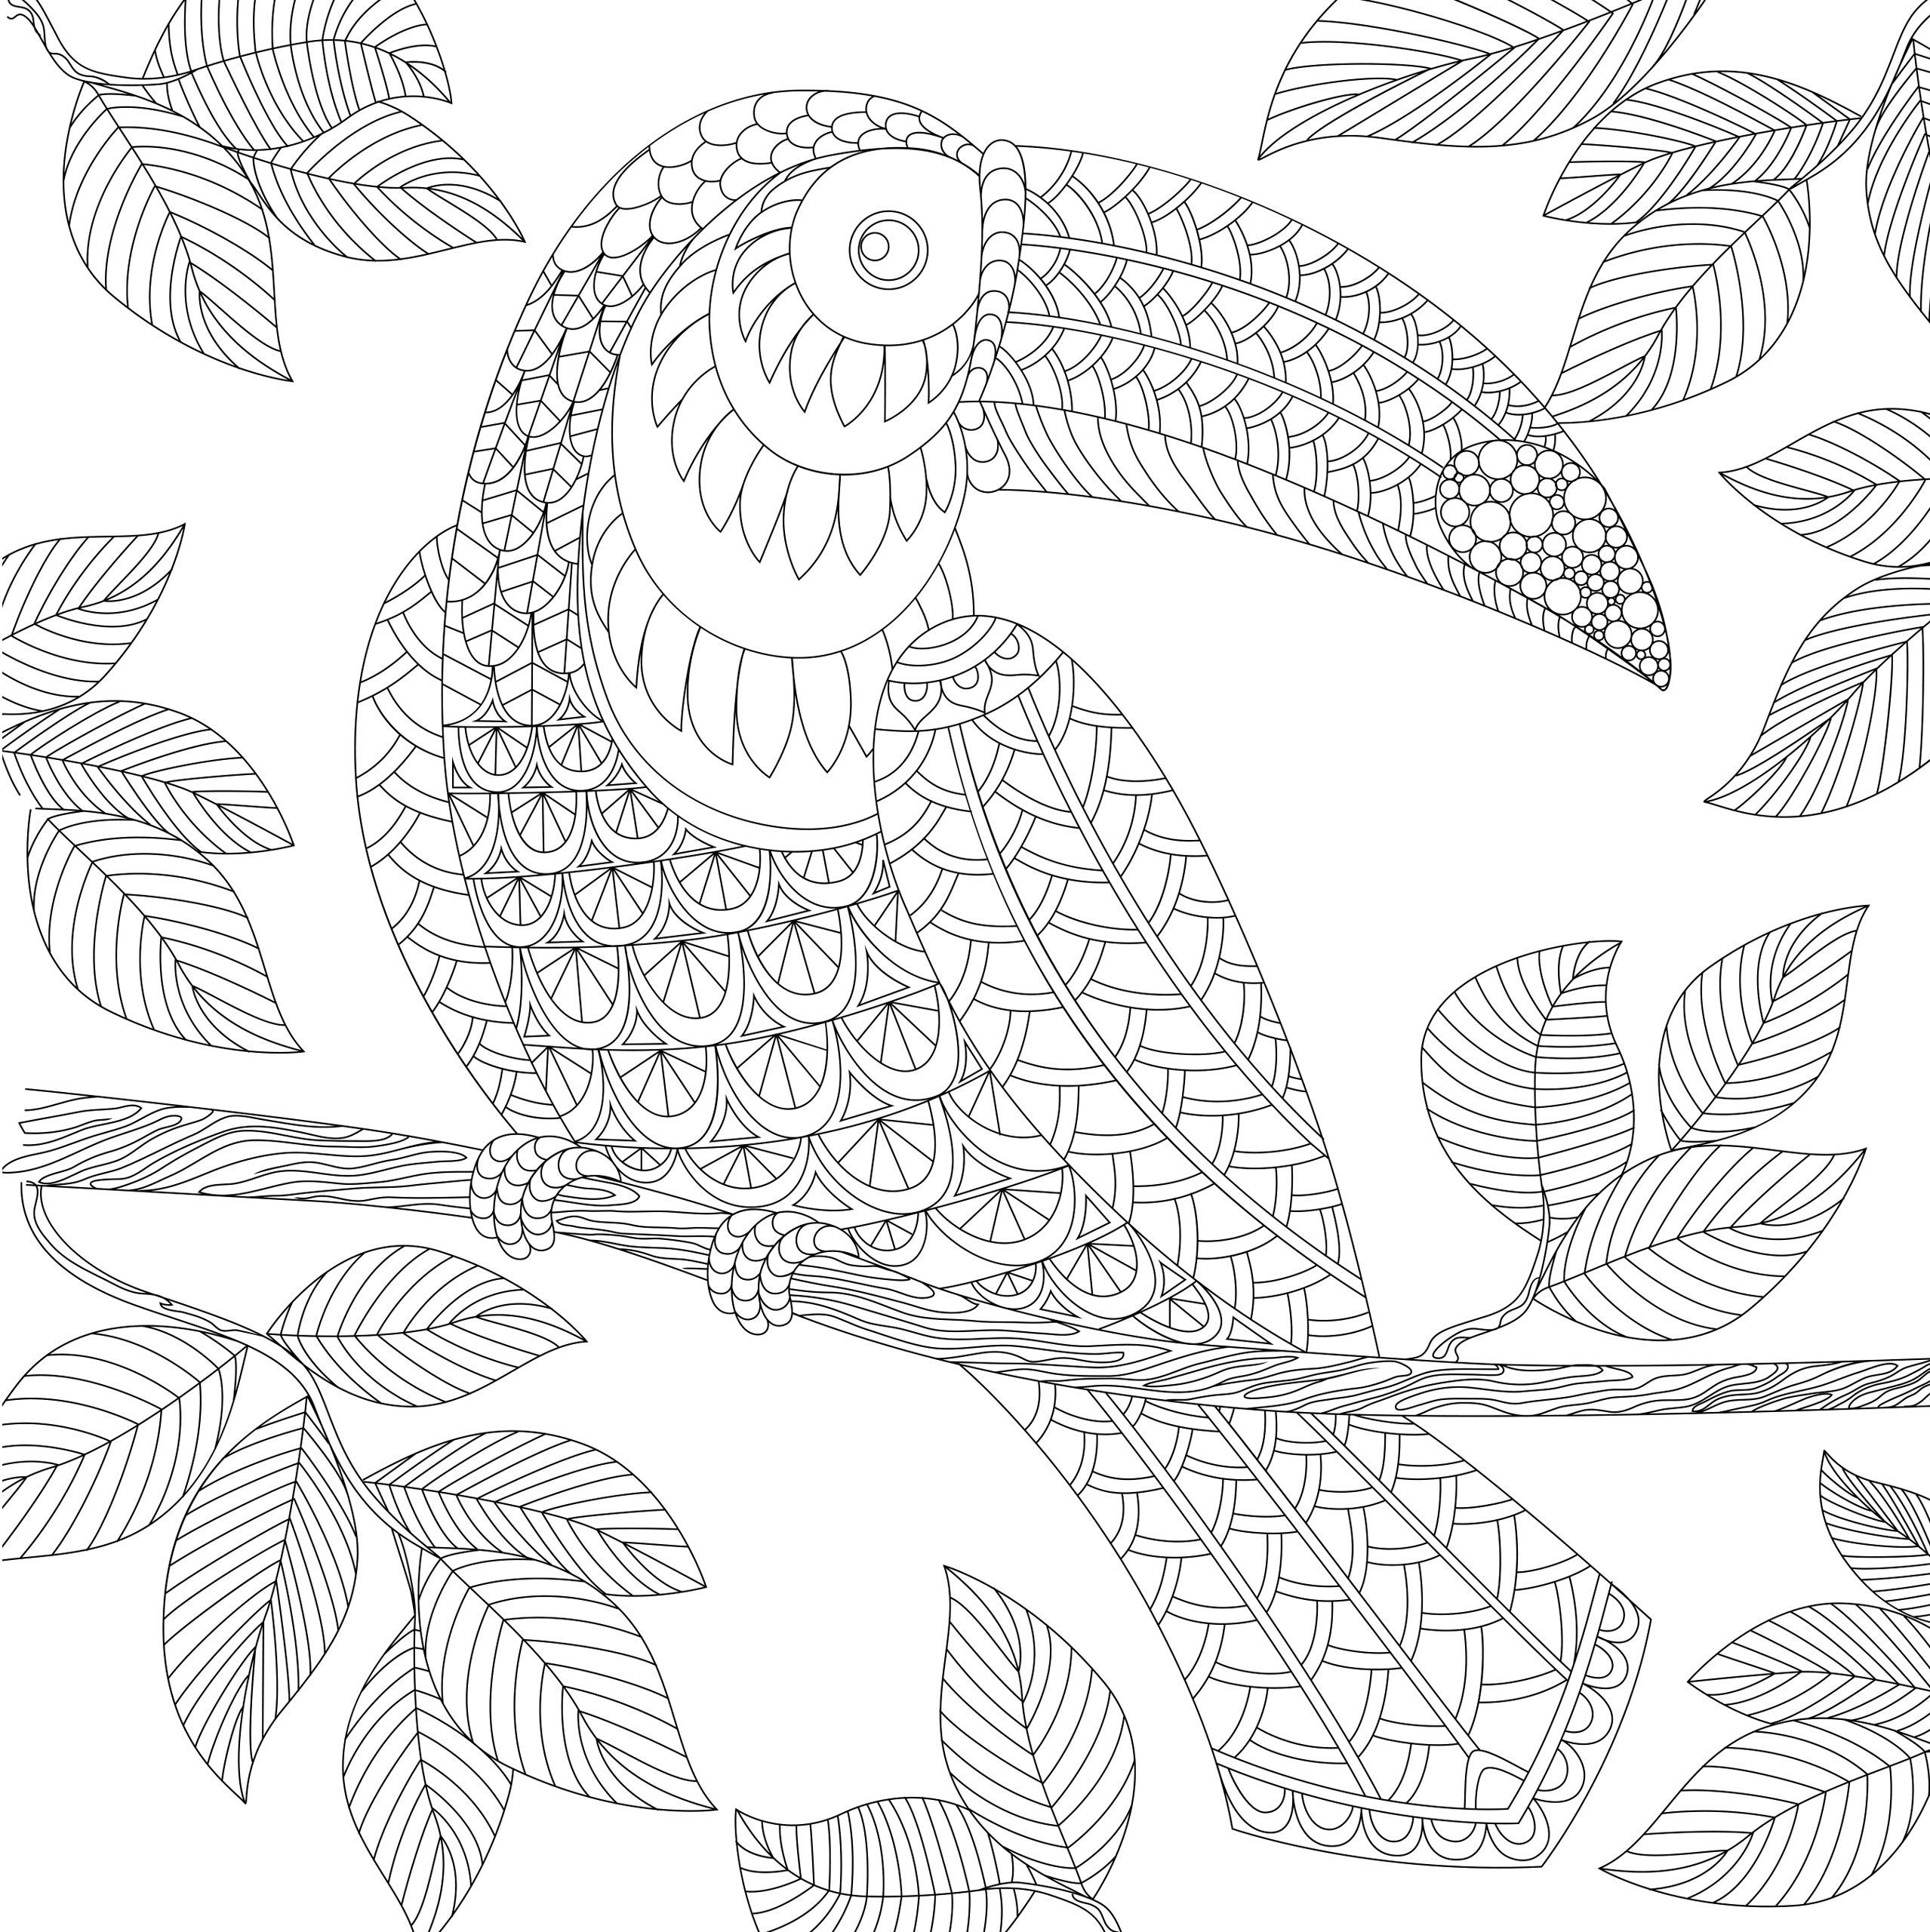 tropical bird coloring pages tropical bird animal coloring pages coloring bird pages tropical